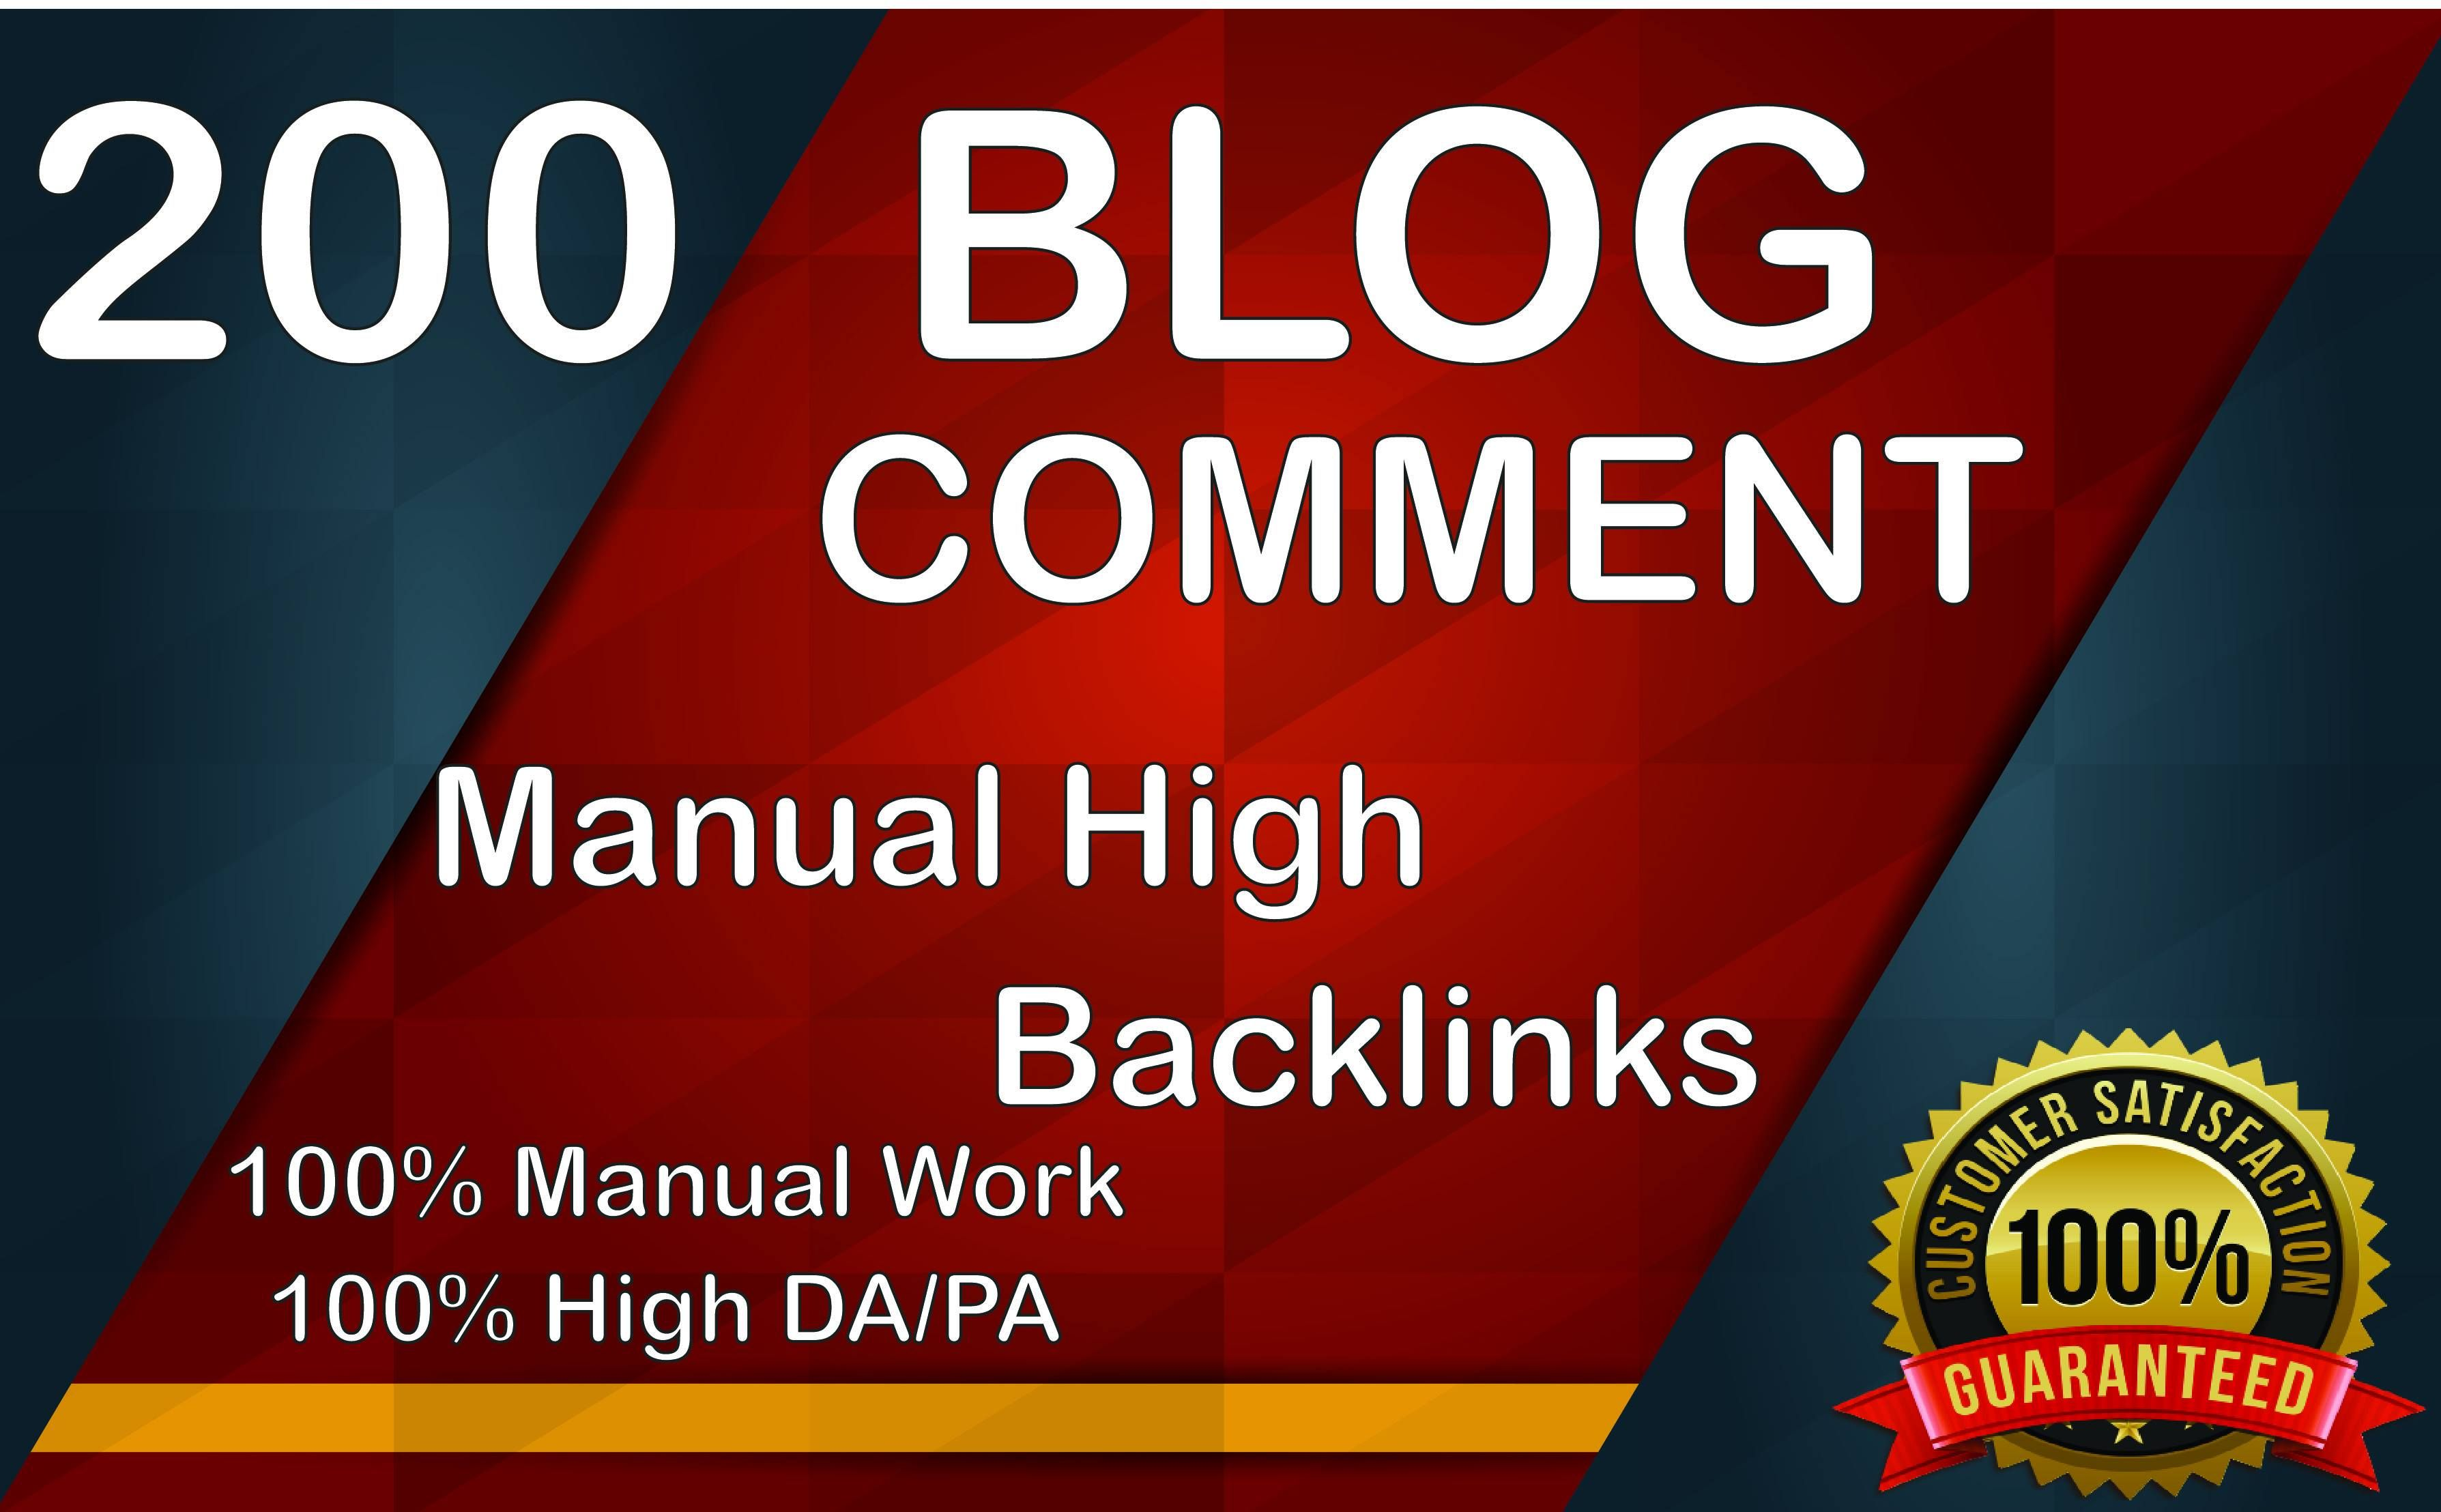 I Will build 200 high quality blog comments backlinks on high PA DA for boost website